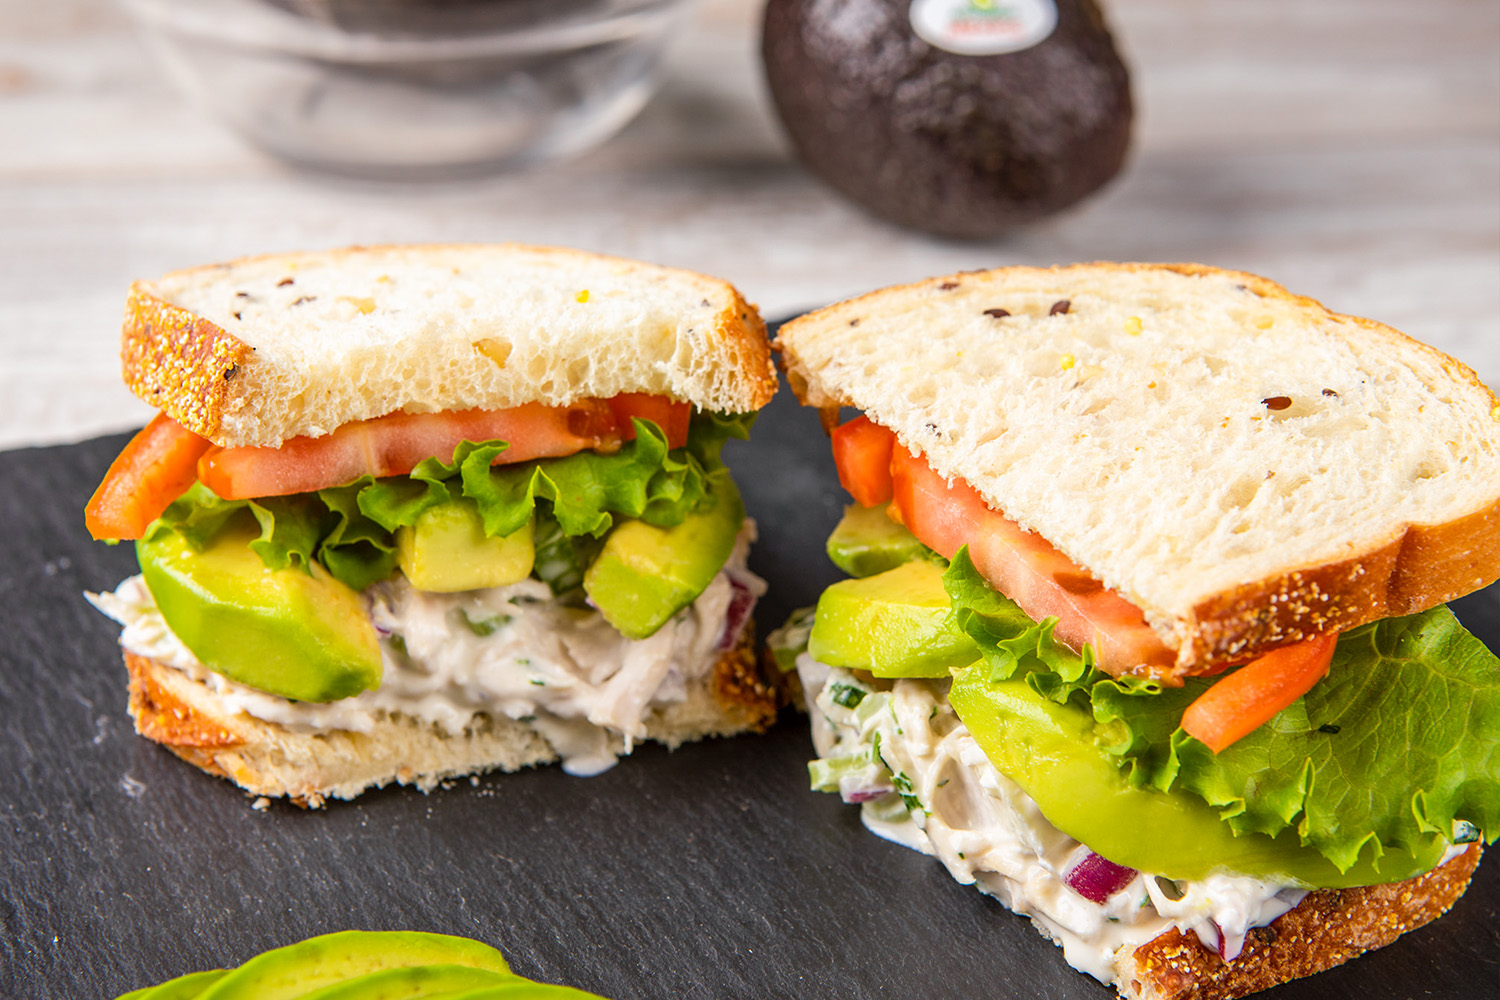 Apple and Avocado Chicken Salad Sandwich, photo by Avocados From Mexico